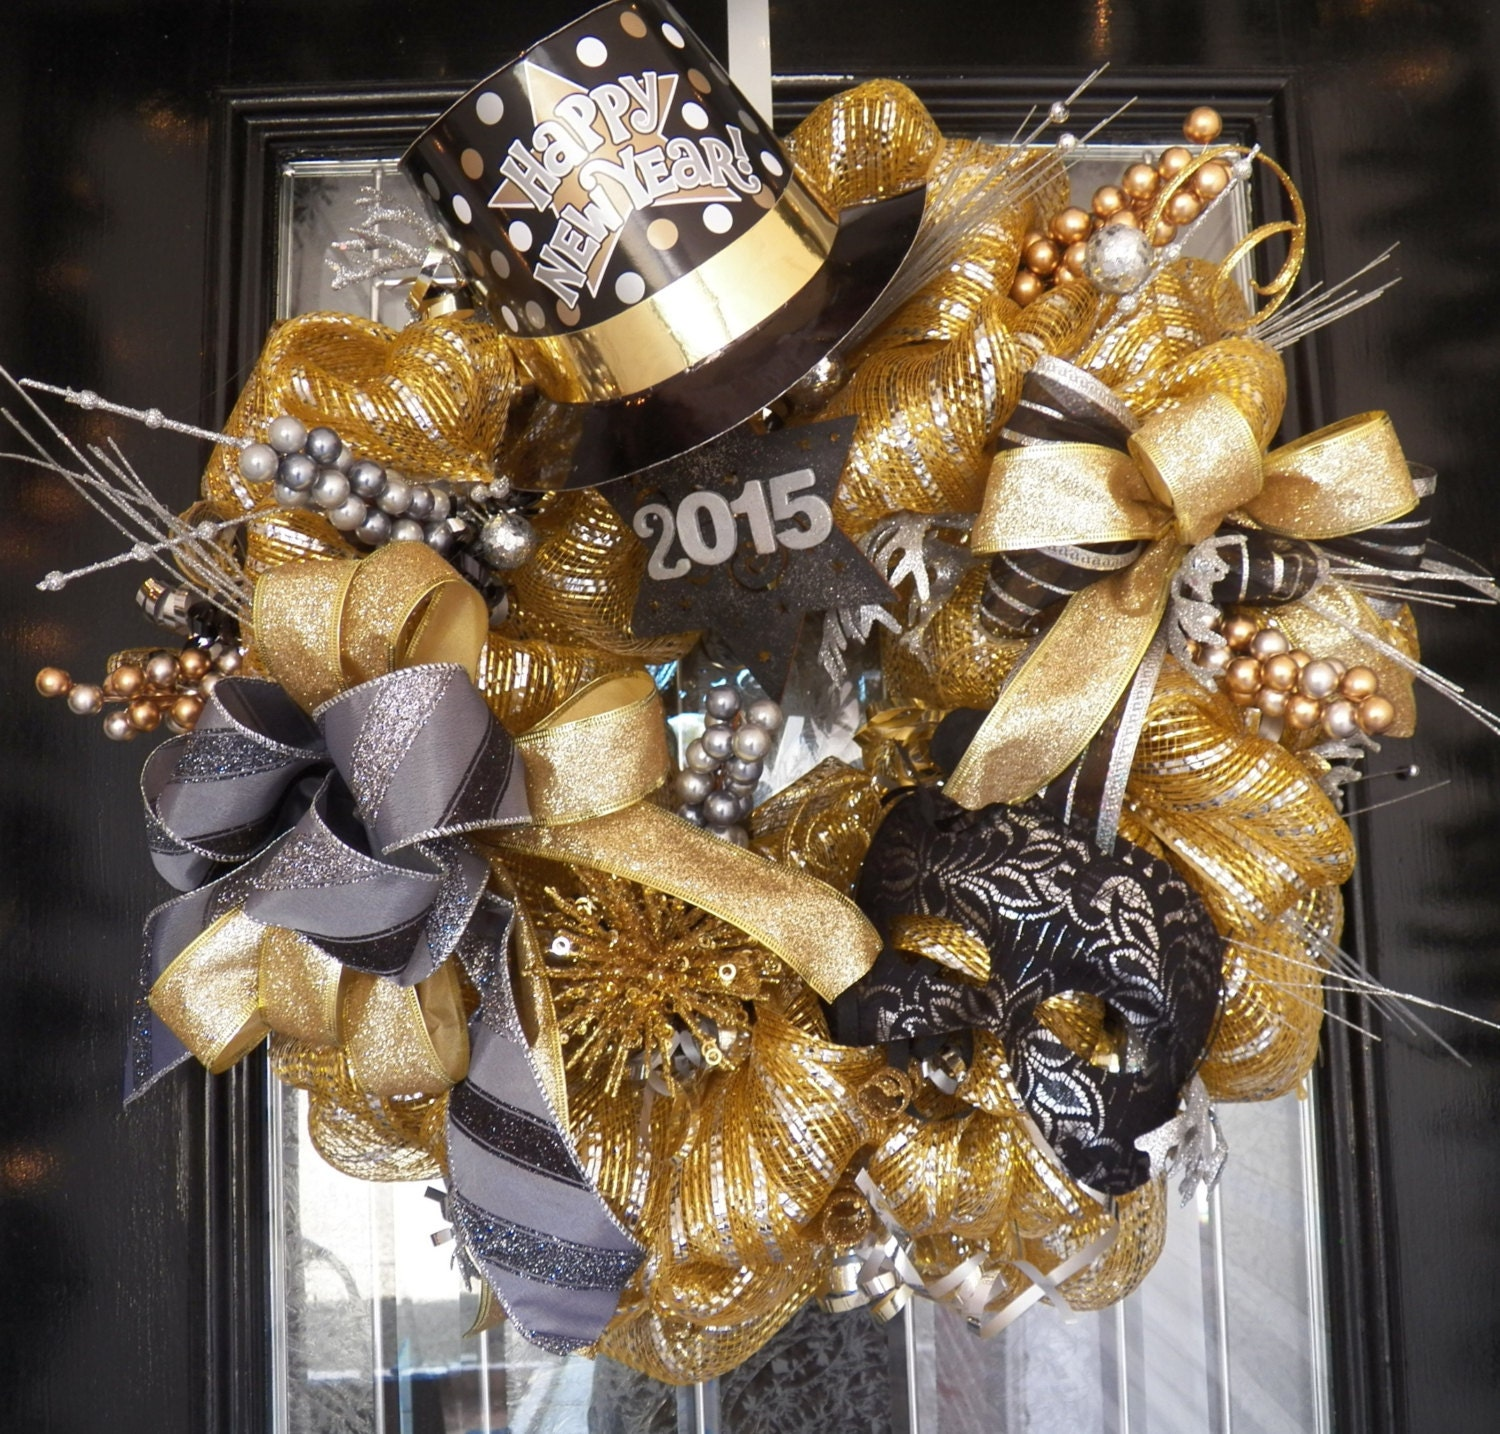 2015 New Years Wreath, New Years Party Decoration, Christmas Gift, Fast Shipping